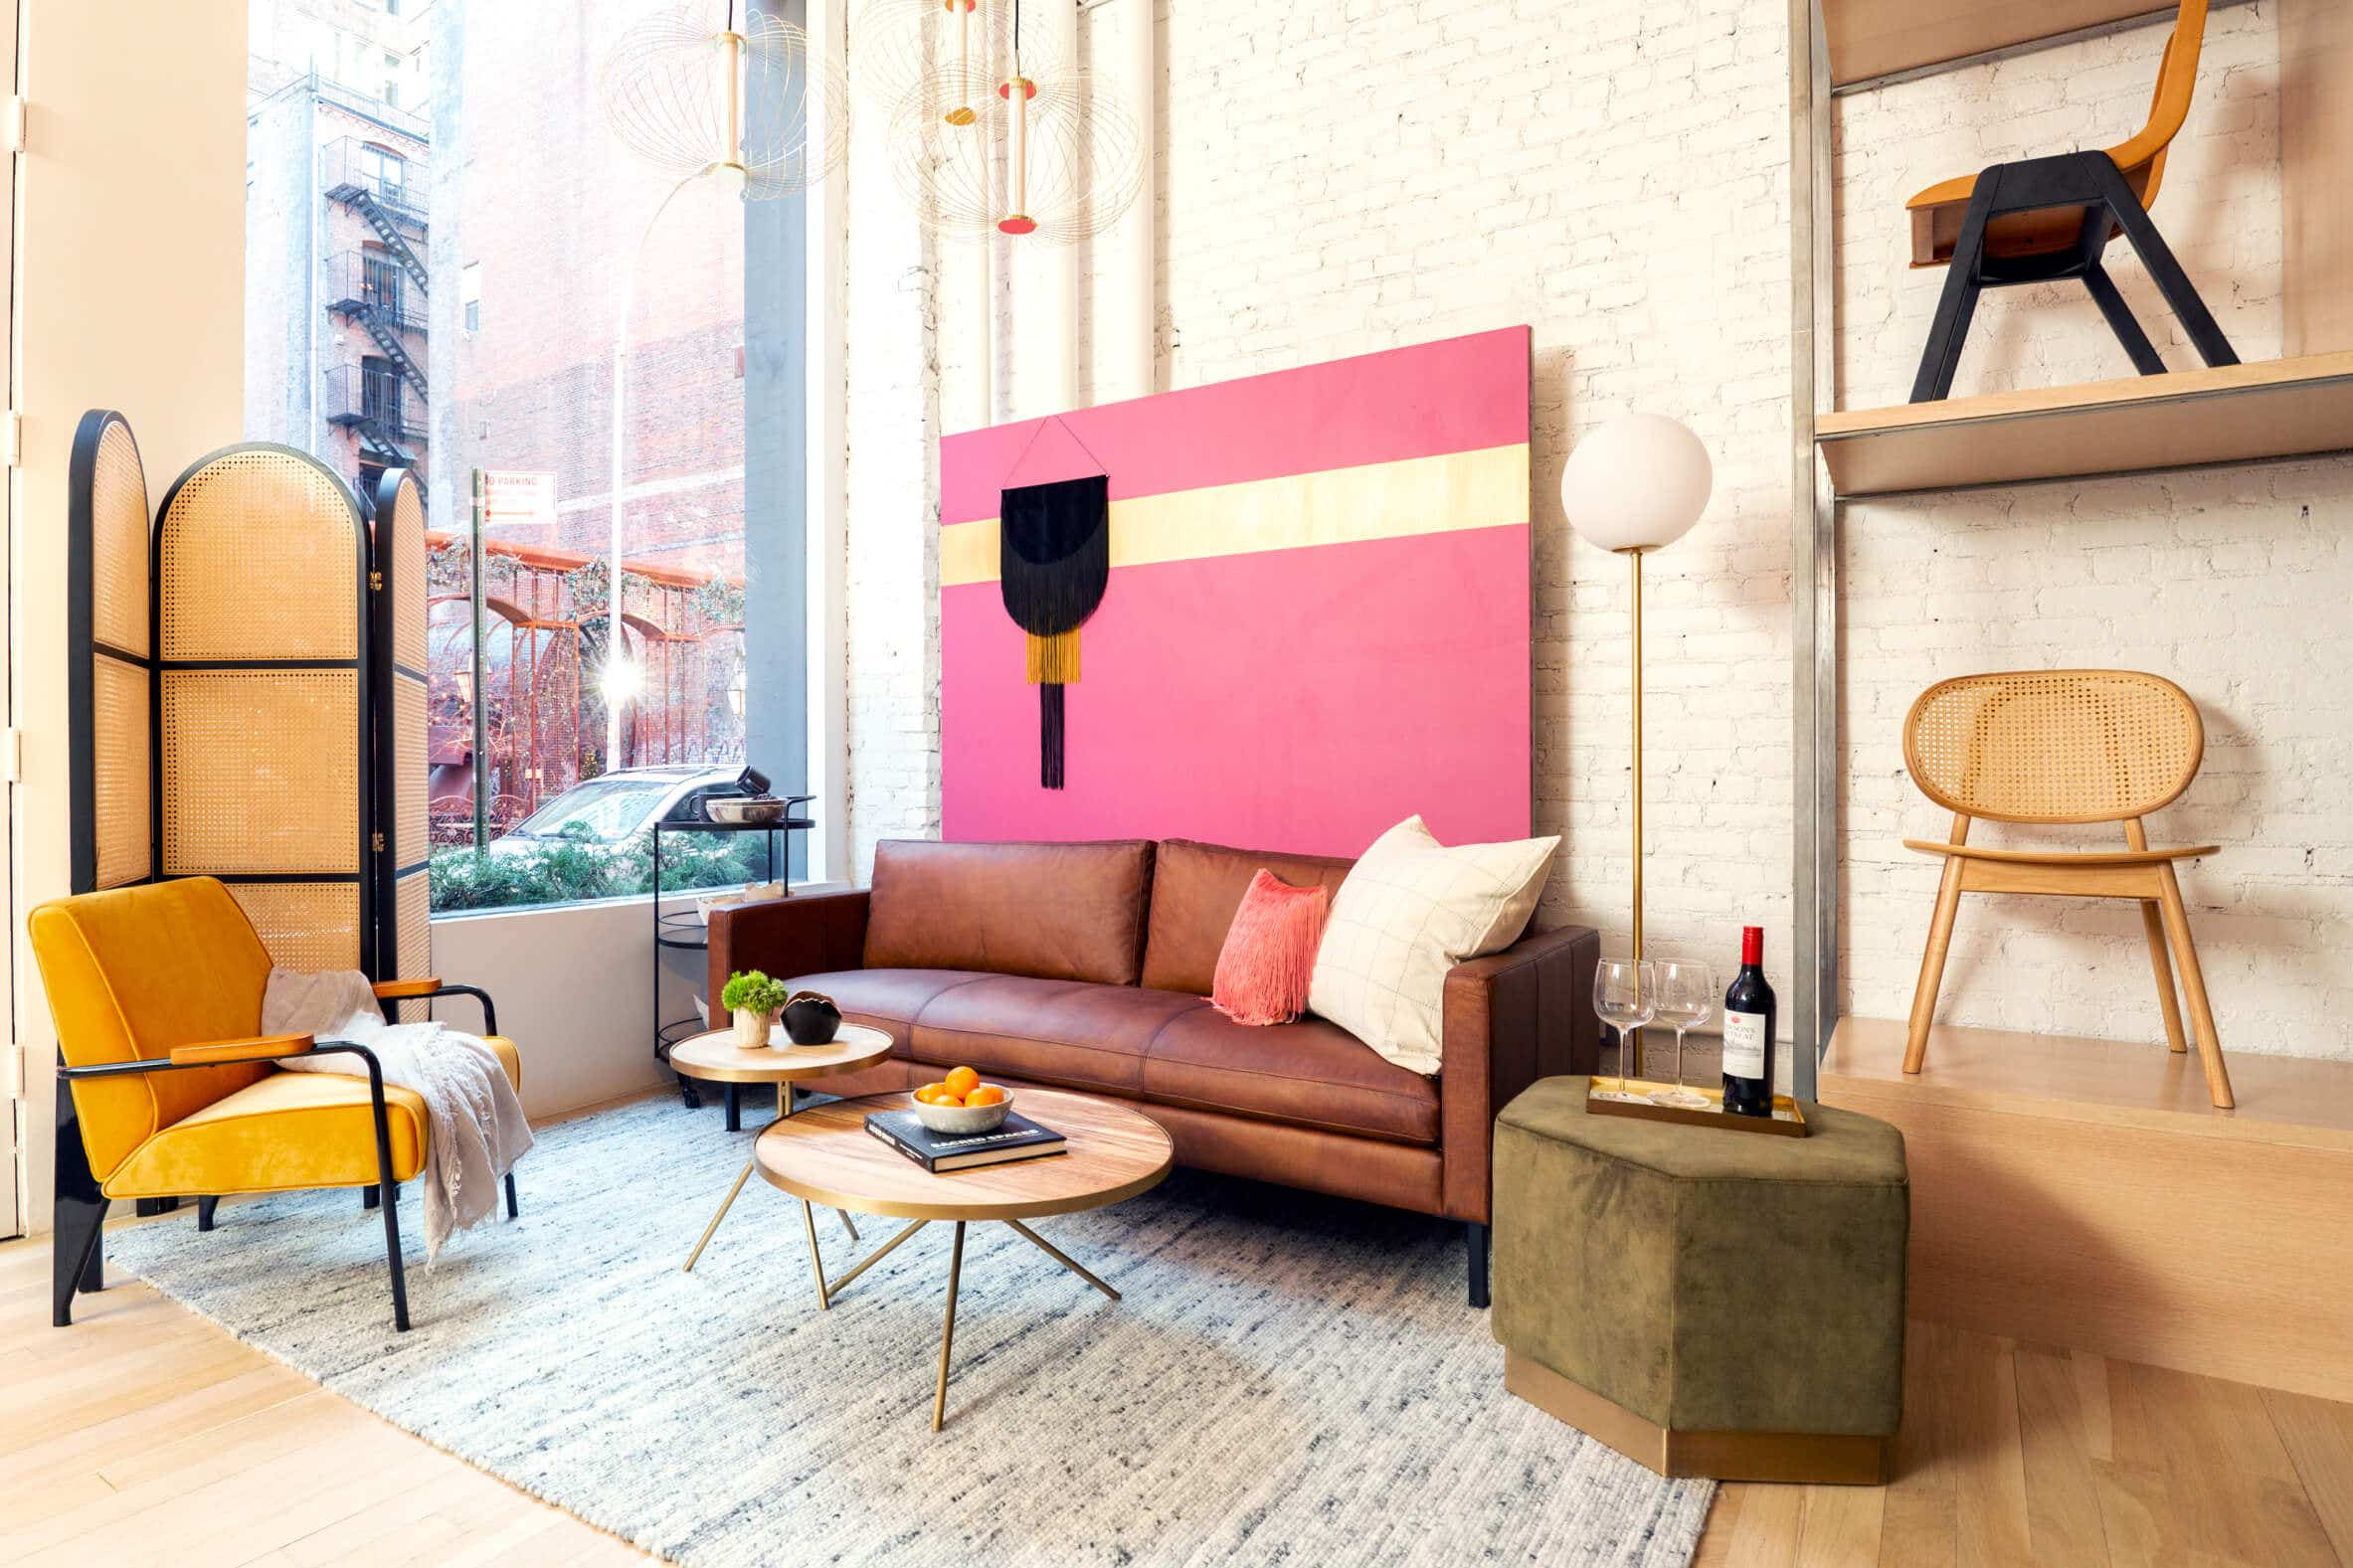 Gallery photo of Industry West showroom in New York City